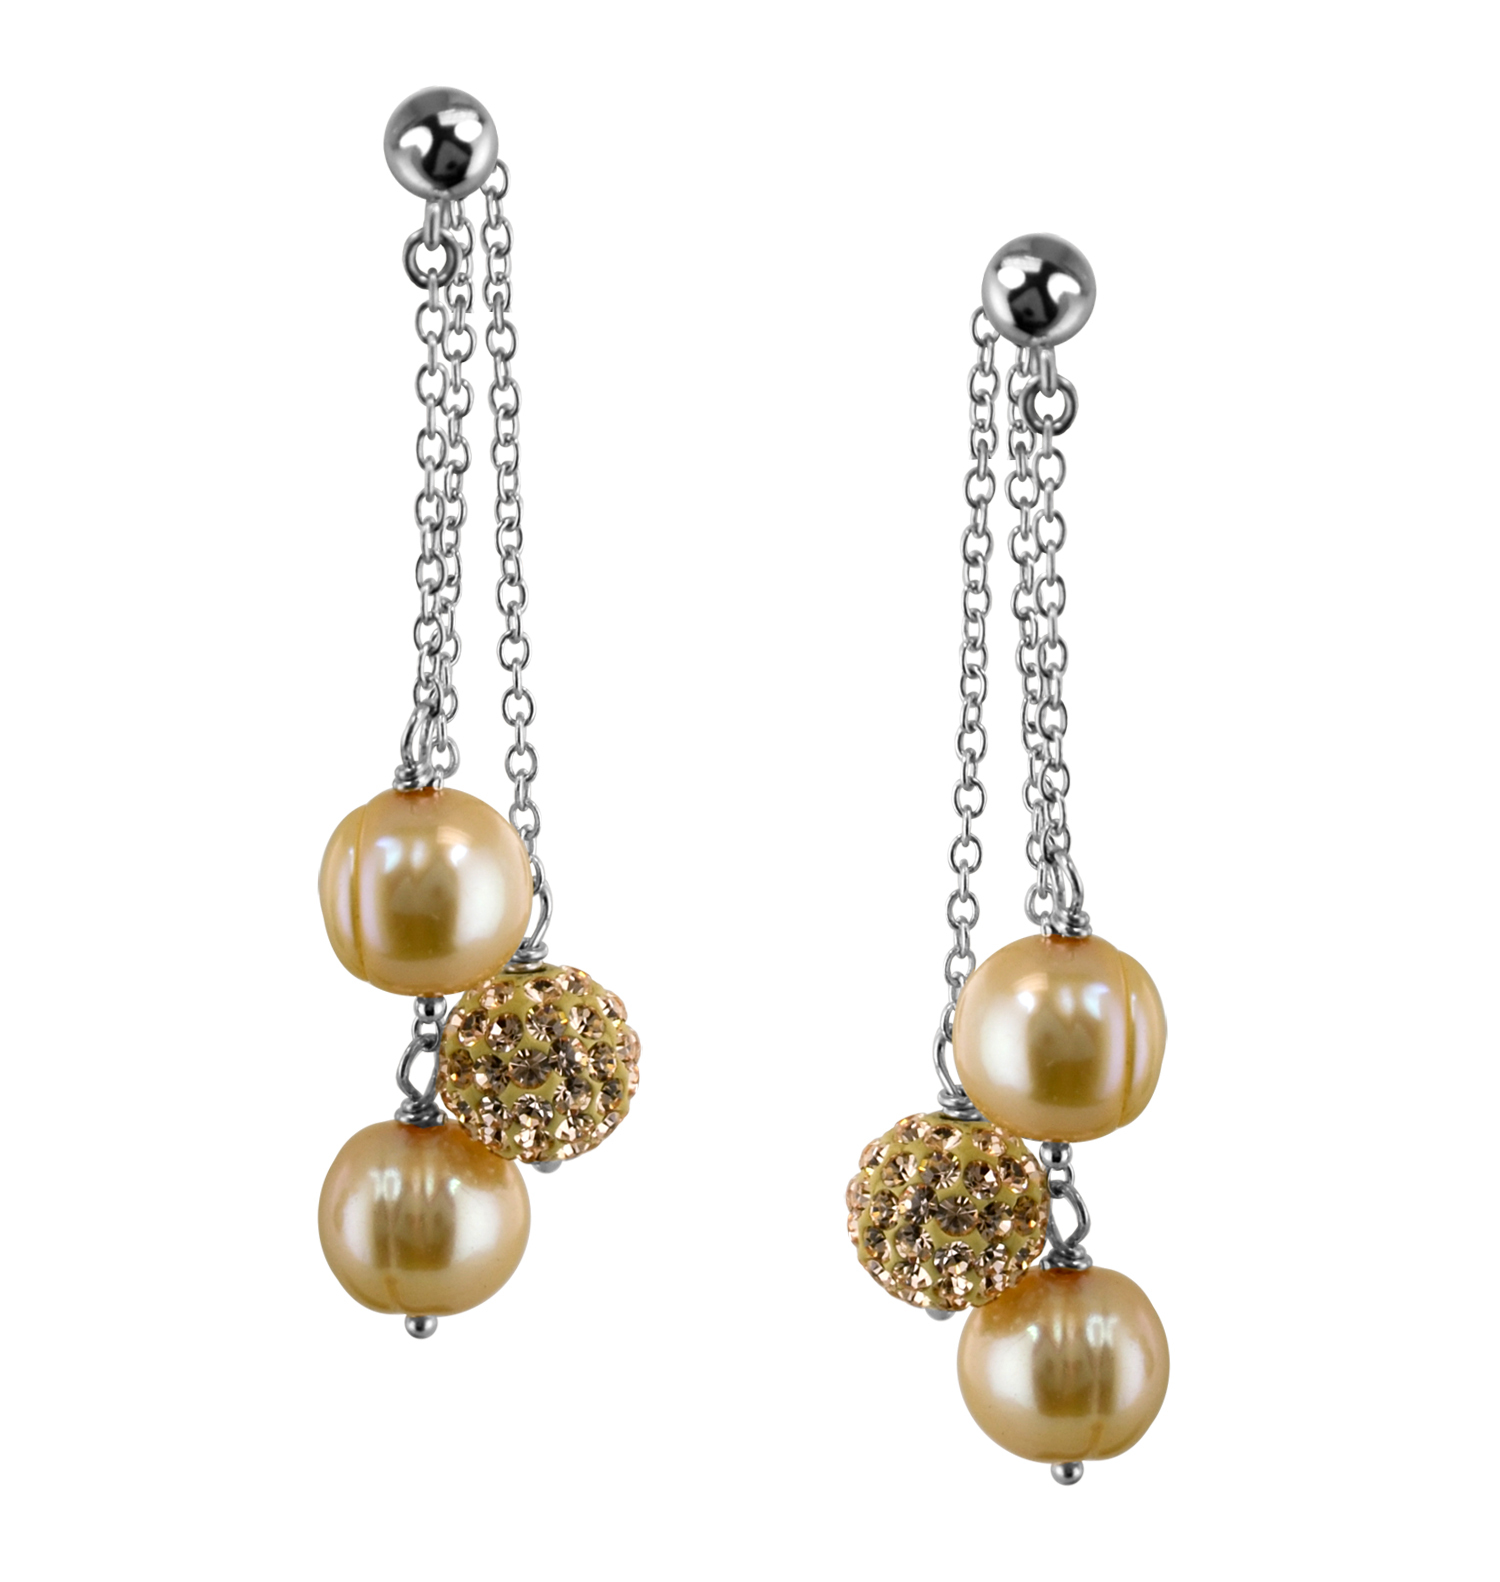 Sterling Silver 8-9mm Champagne Round Ringed Freshwater Cultured Pearl and 8mm Pave Crystal Bead Drop Earring